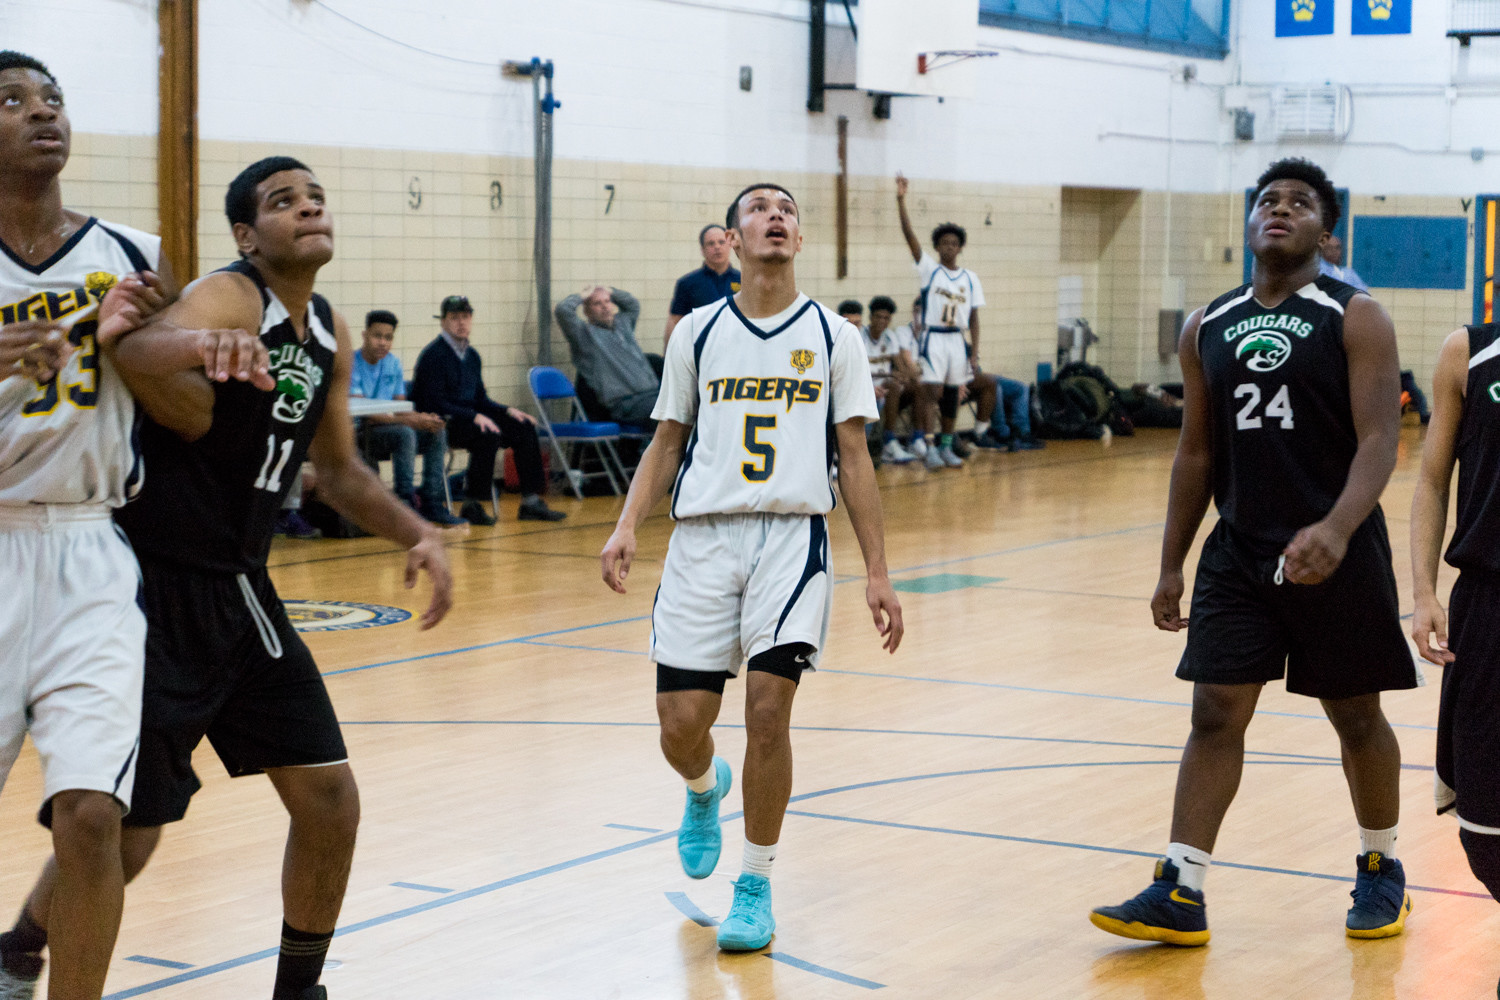 Riverdale/Kingsbridge Academy's Jalen Cuello made his triumphant return to the boys basketball teaam after missing most of the season over a heart scare.